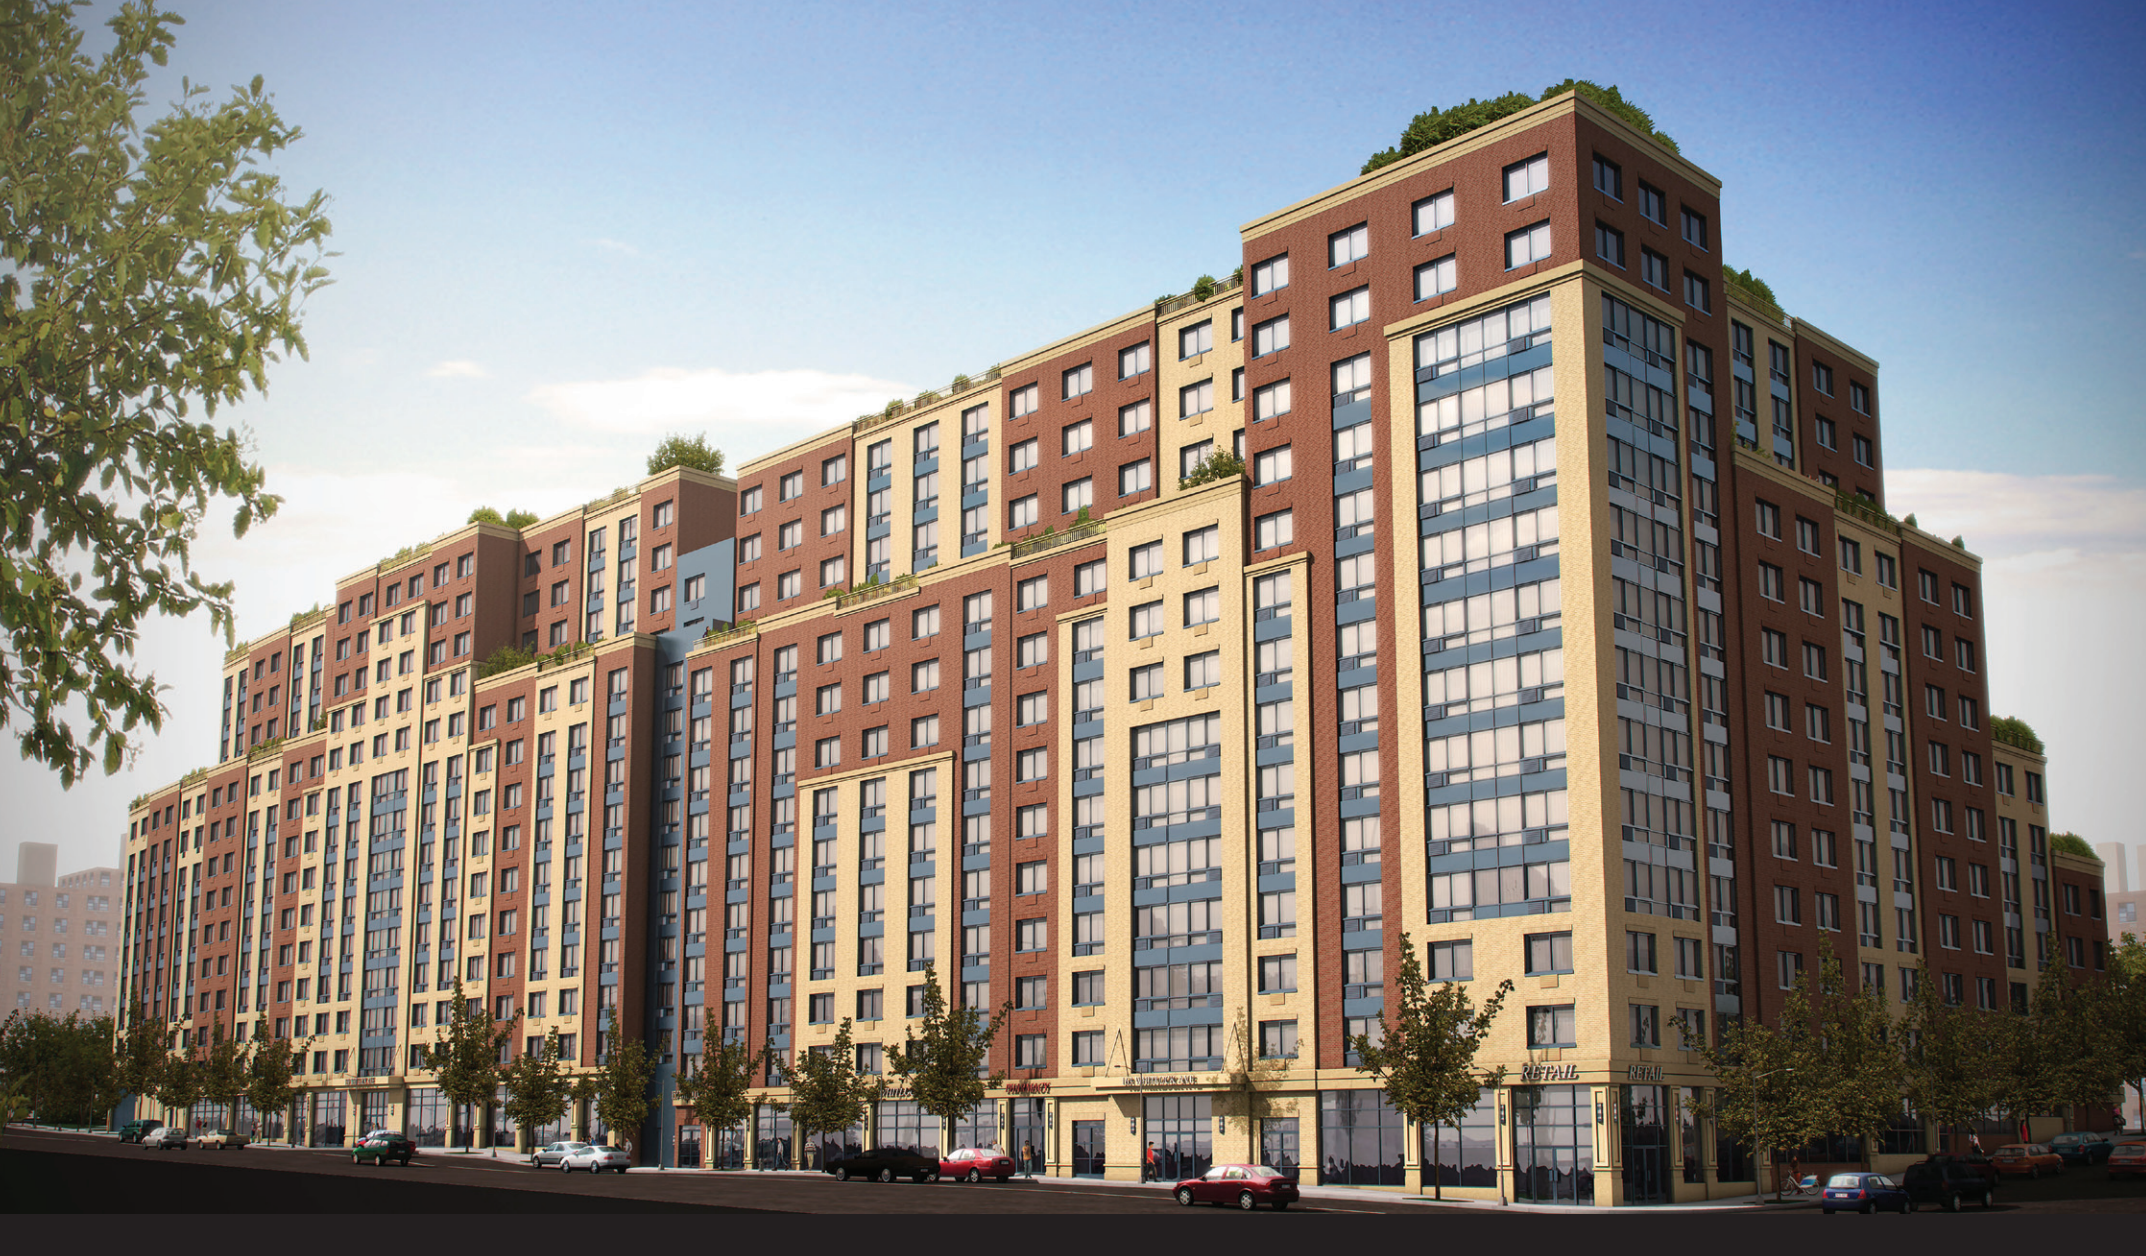 Revealed: 1125 Whitlock Avenue, 474-Unit South Bronx Affordable Housing  Project - New York YIMBY